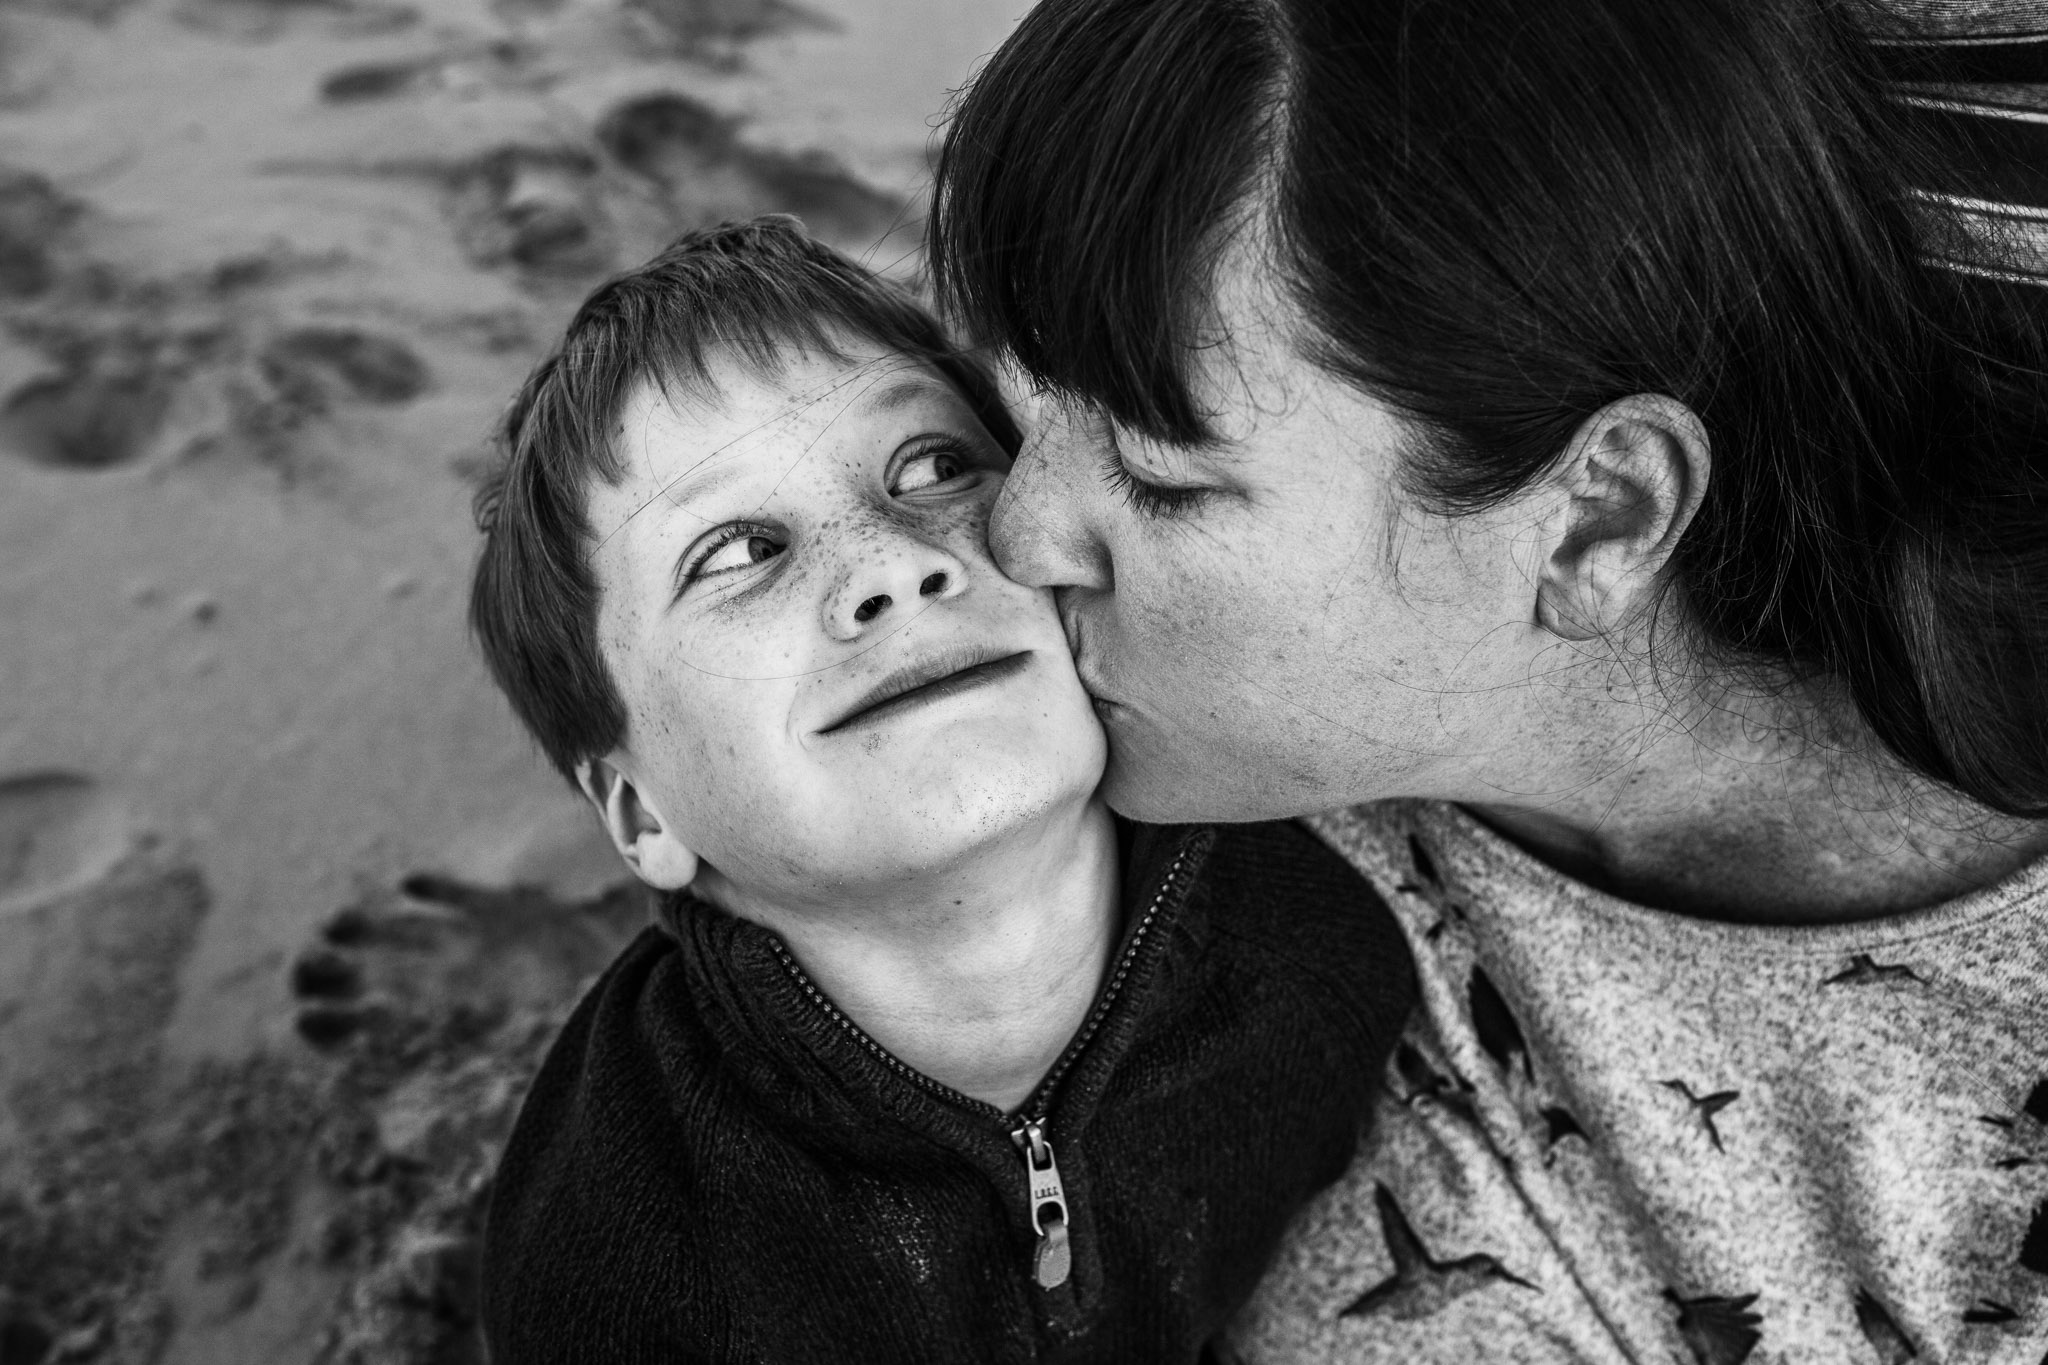 mother-and-son-embracing-II (1 of 1).jpg